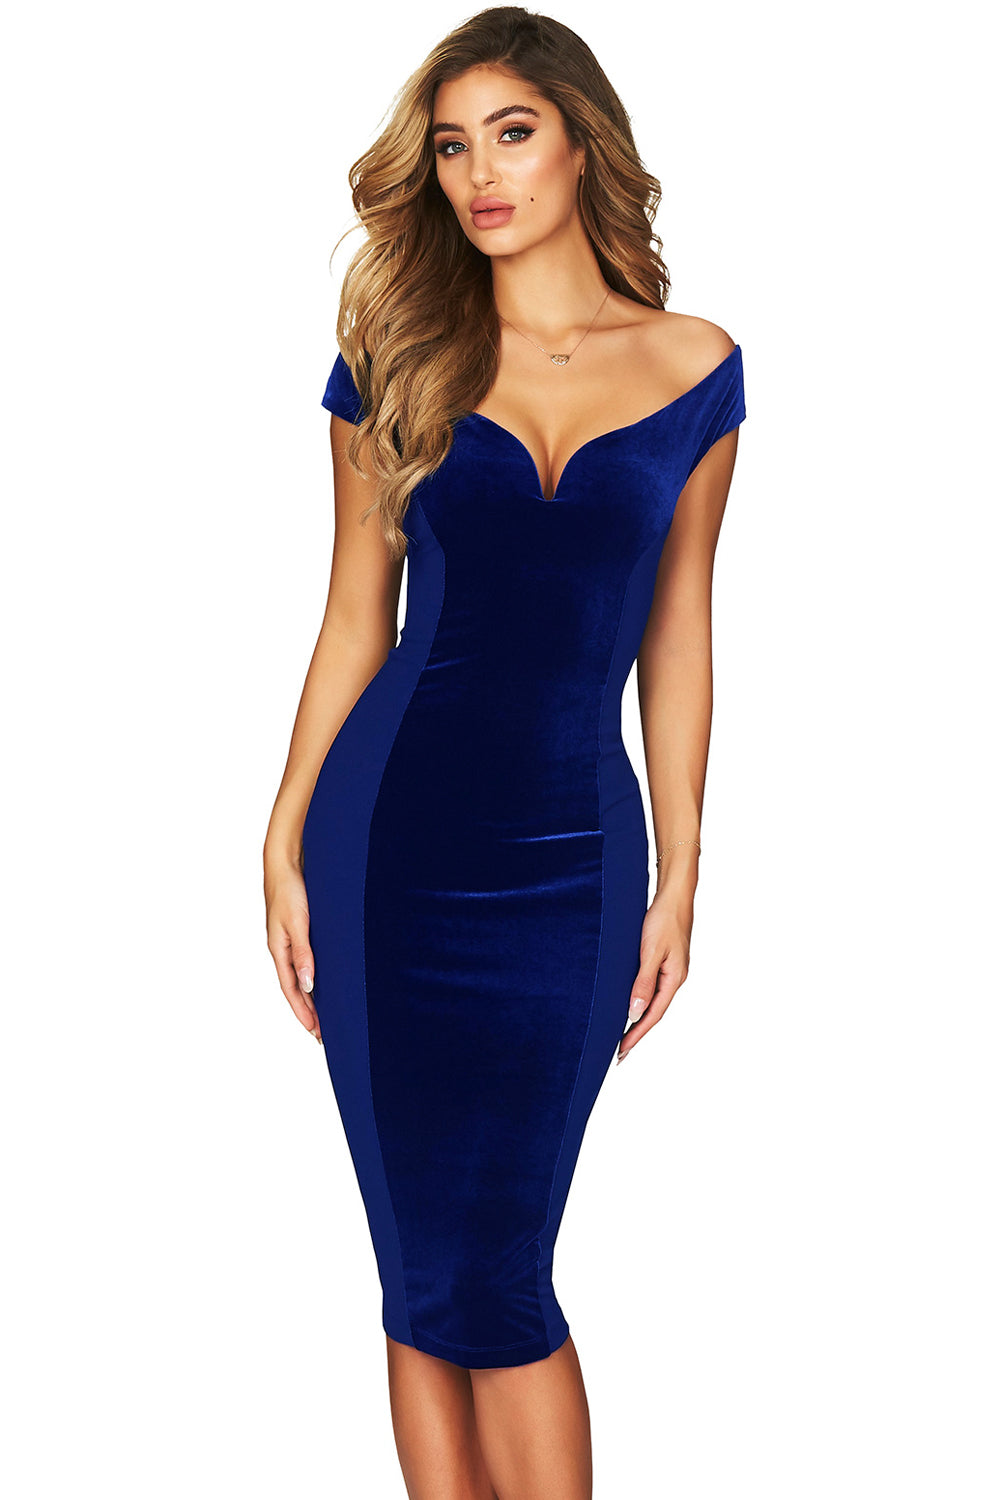 Show Hourglass Figure Navy Off Shoulder Dress